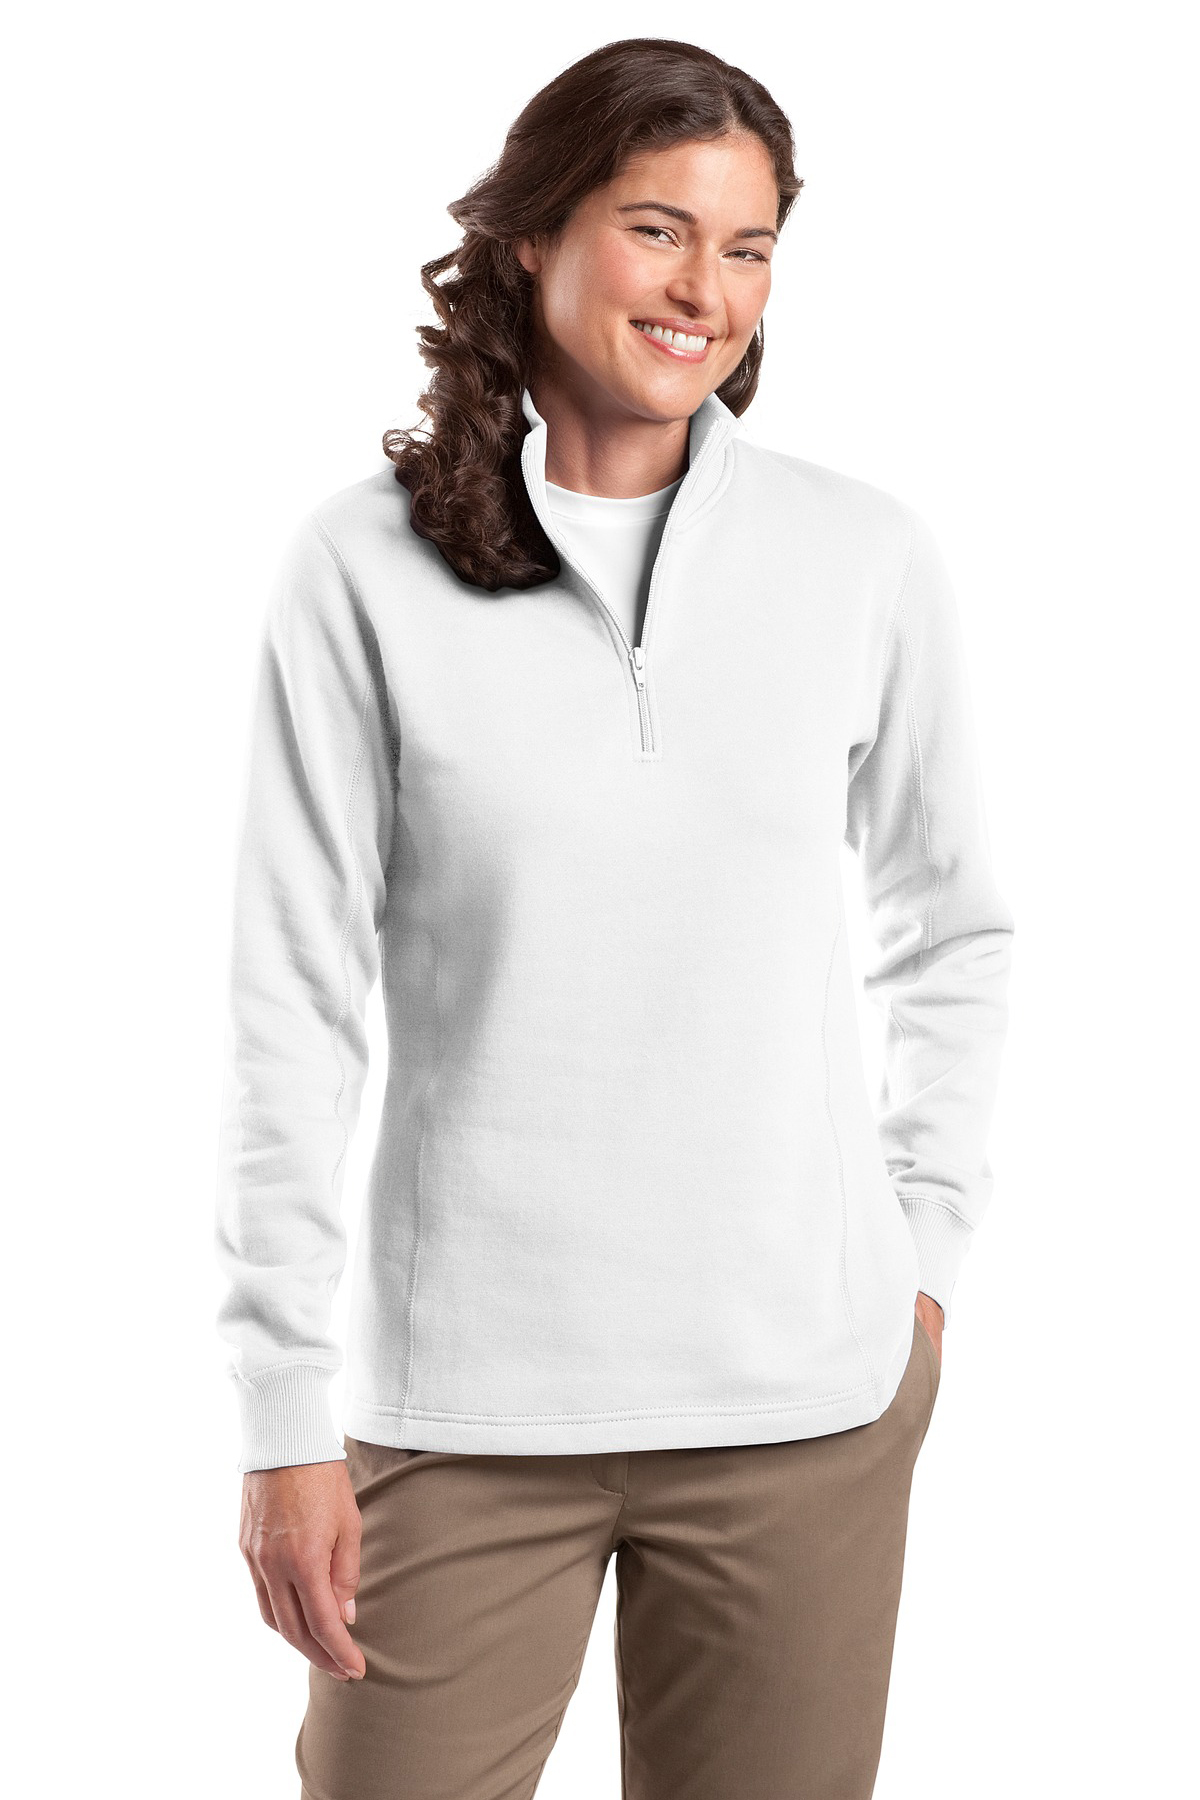 Sweatshirts-Fleece-Half-Quarter-Zip-6